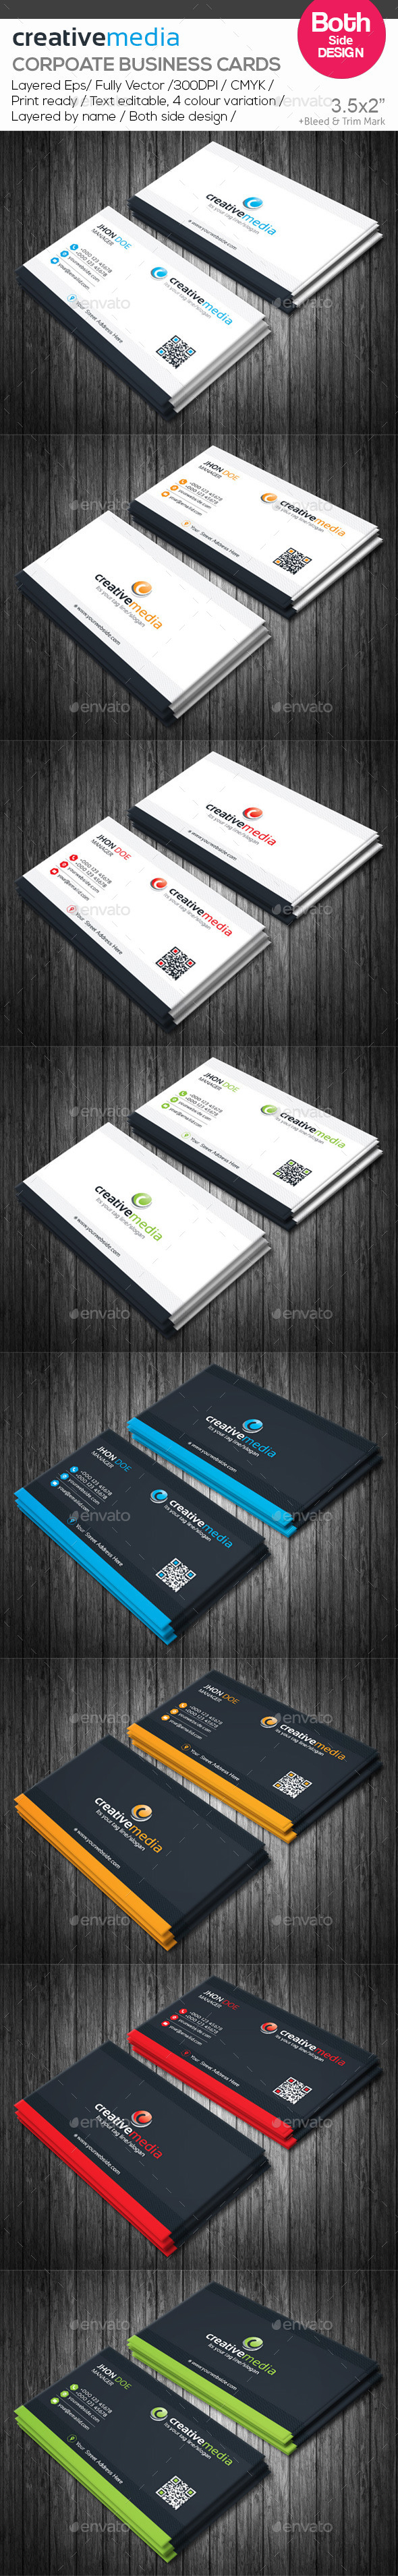 GraphicRiver creative media Corporate Business Cards 10582369